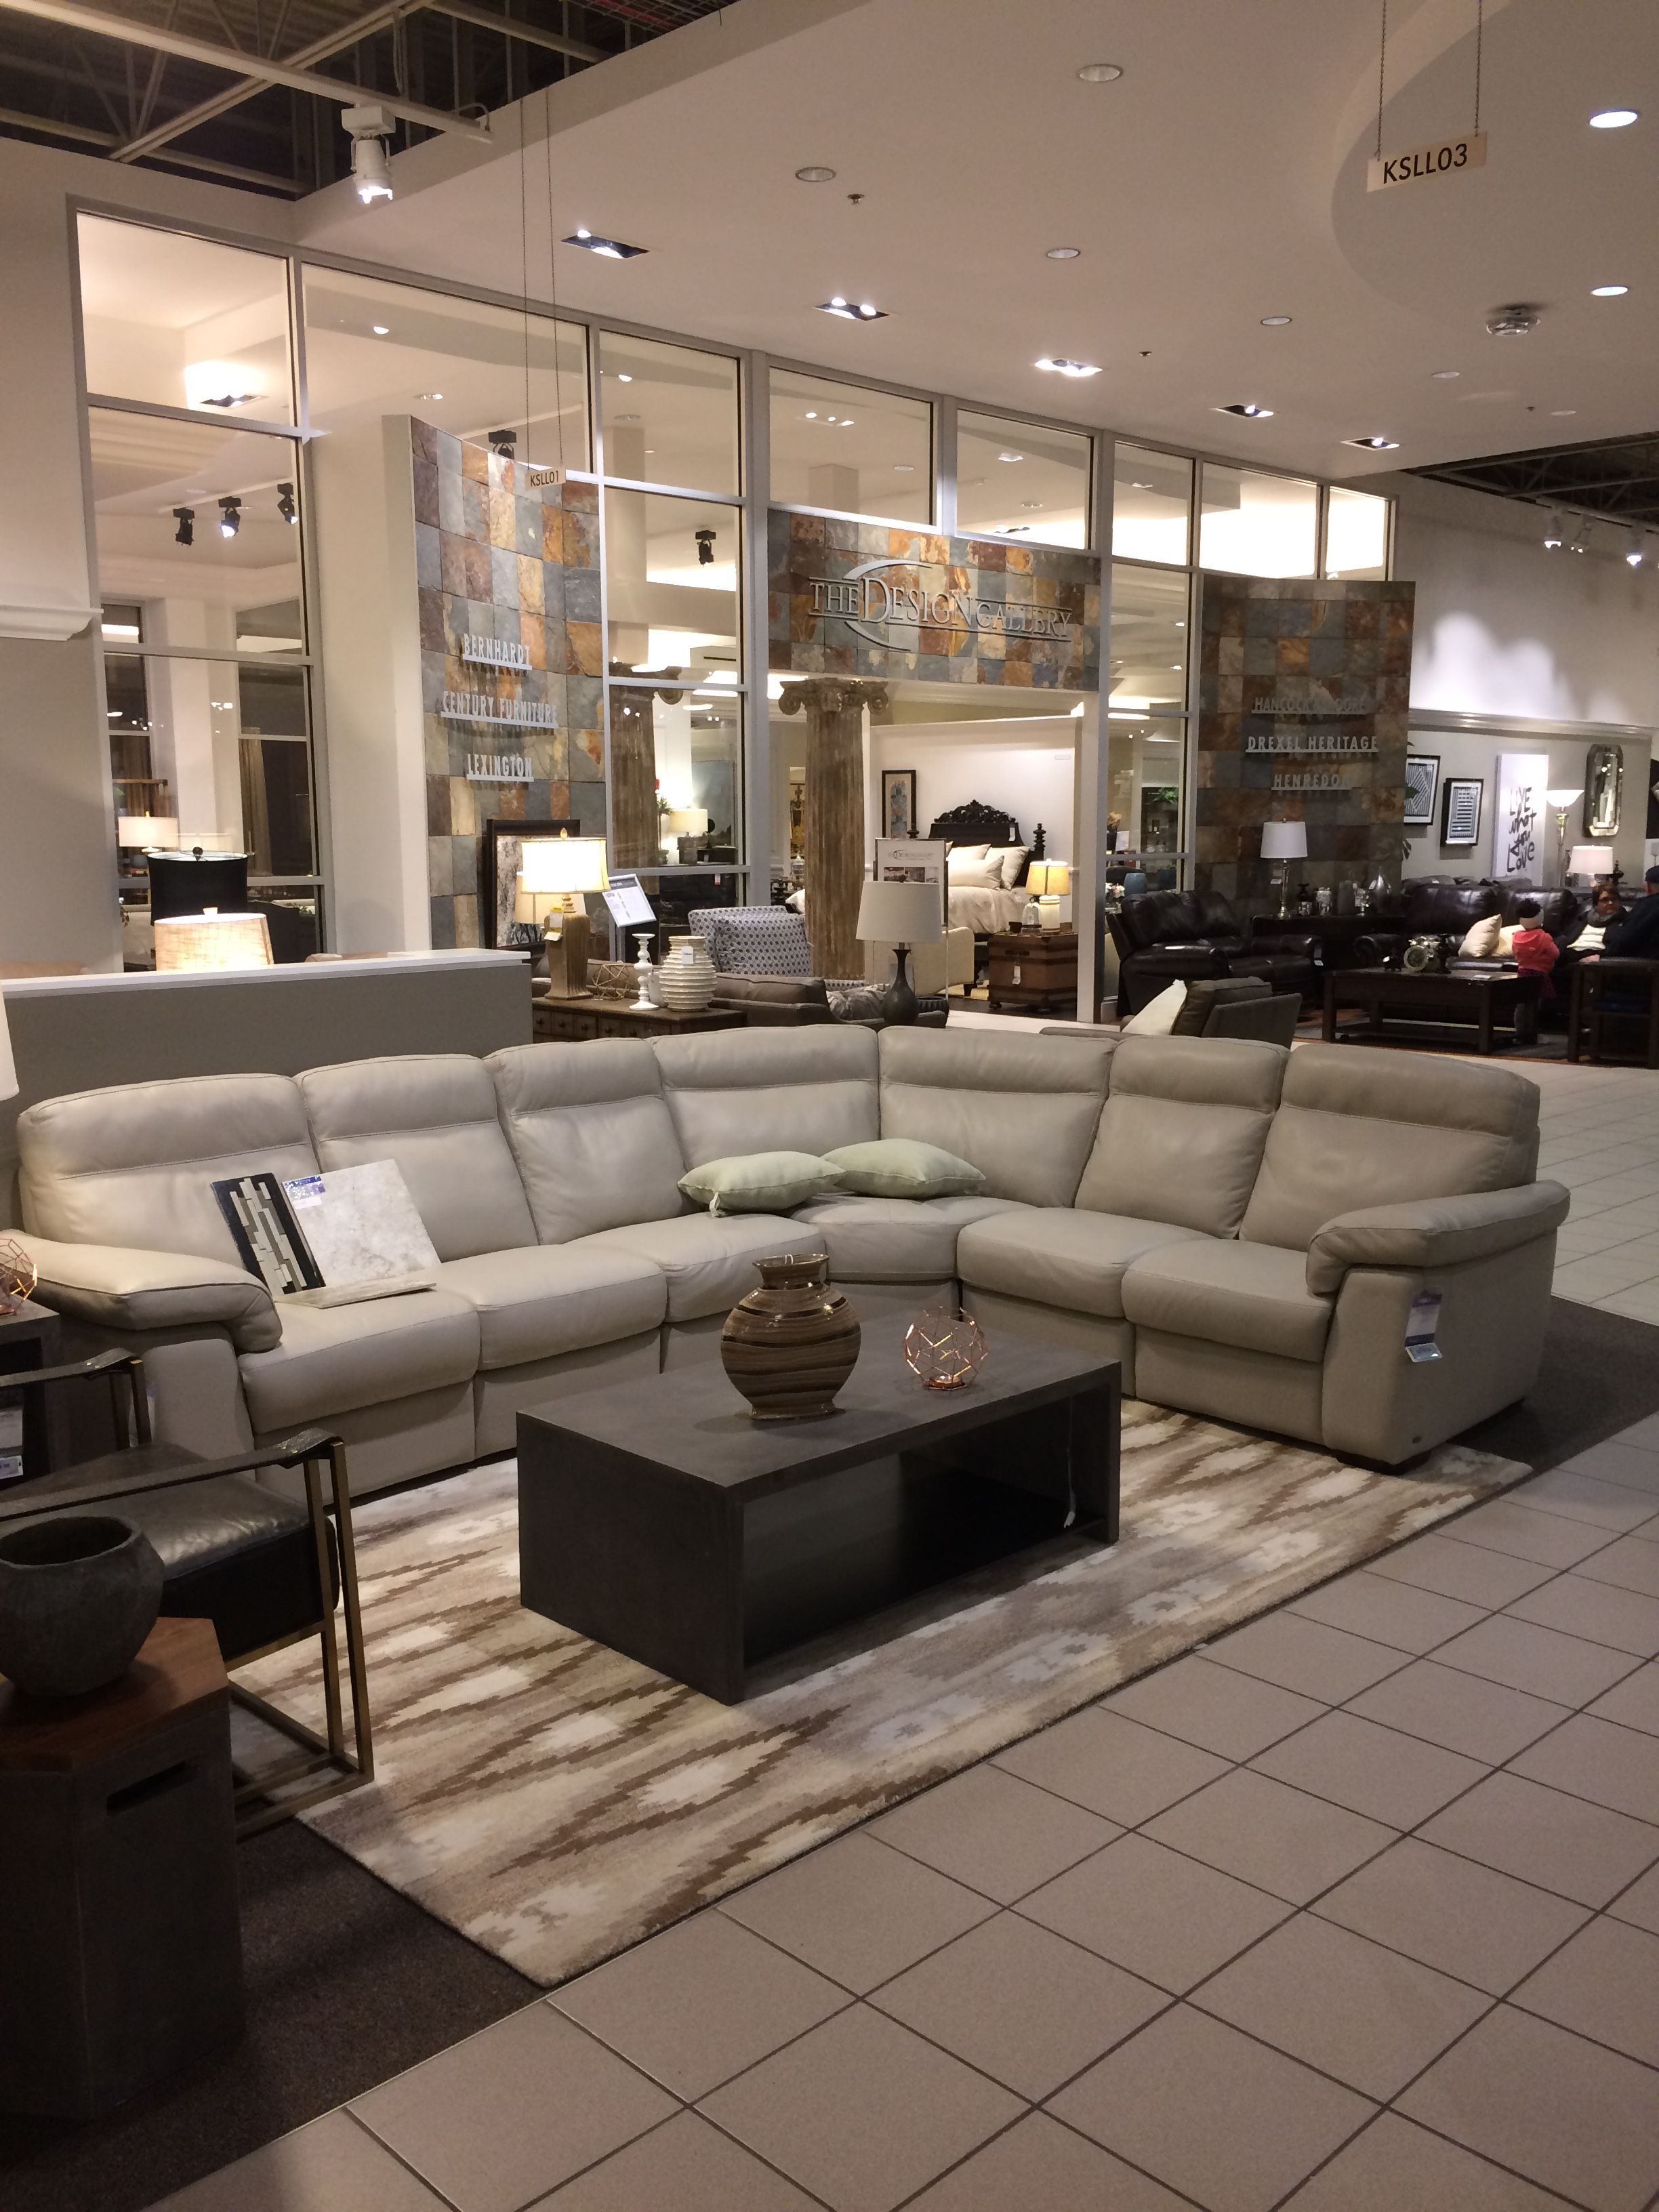 Brivido b757 sectional sectionaltaupe farm house